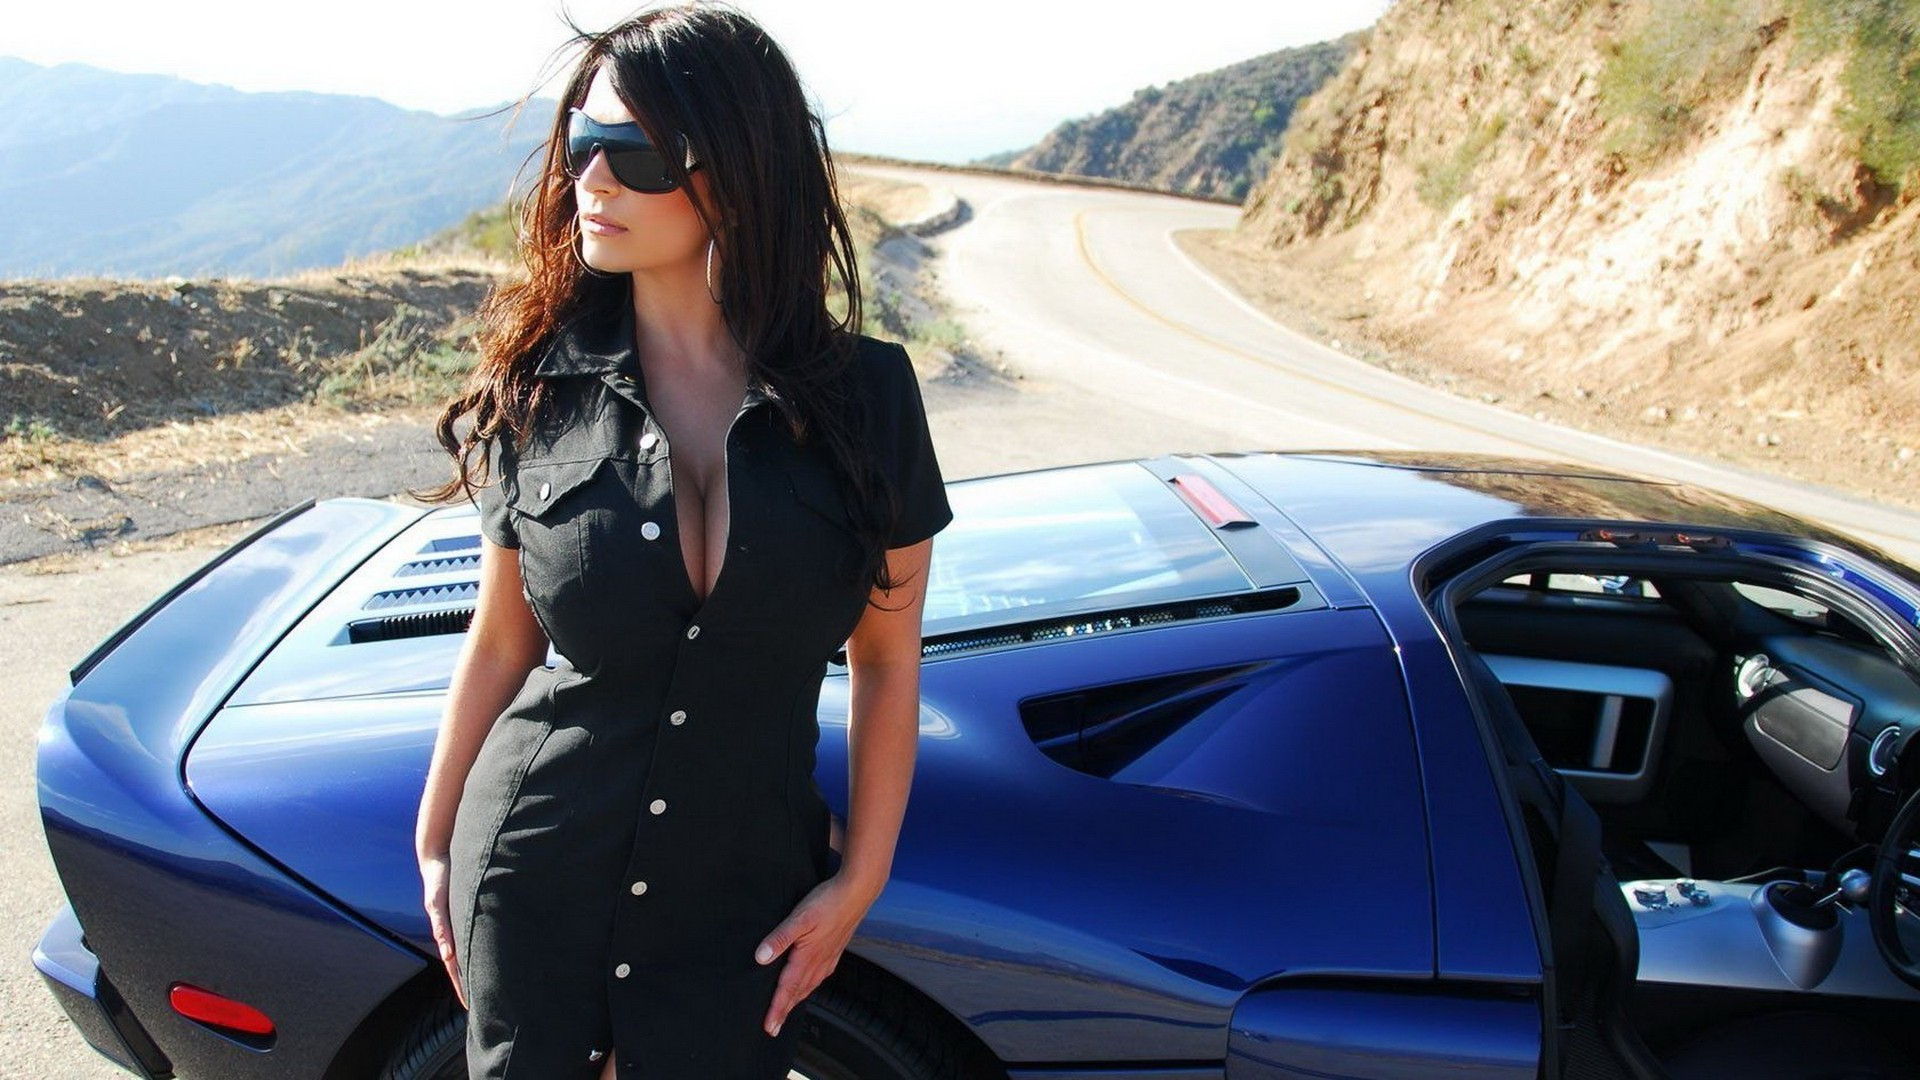 Retro Car Home Wallpaper Denise Milani Wallpapers Hd Desktop And Mobile Backgrounds